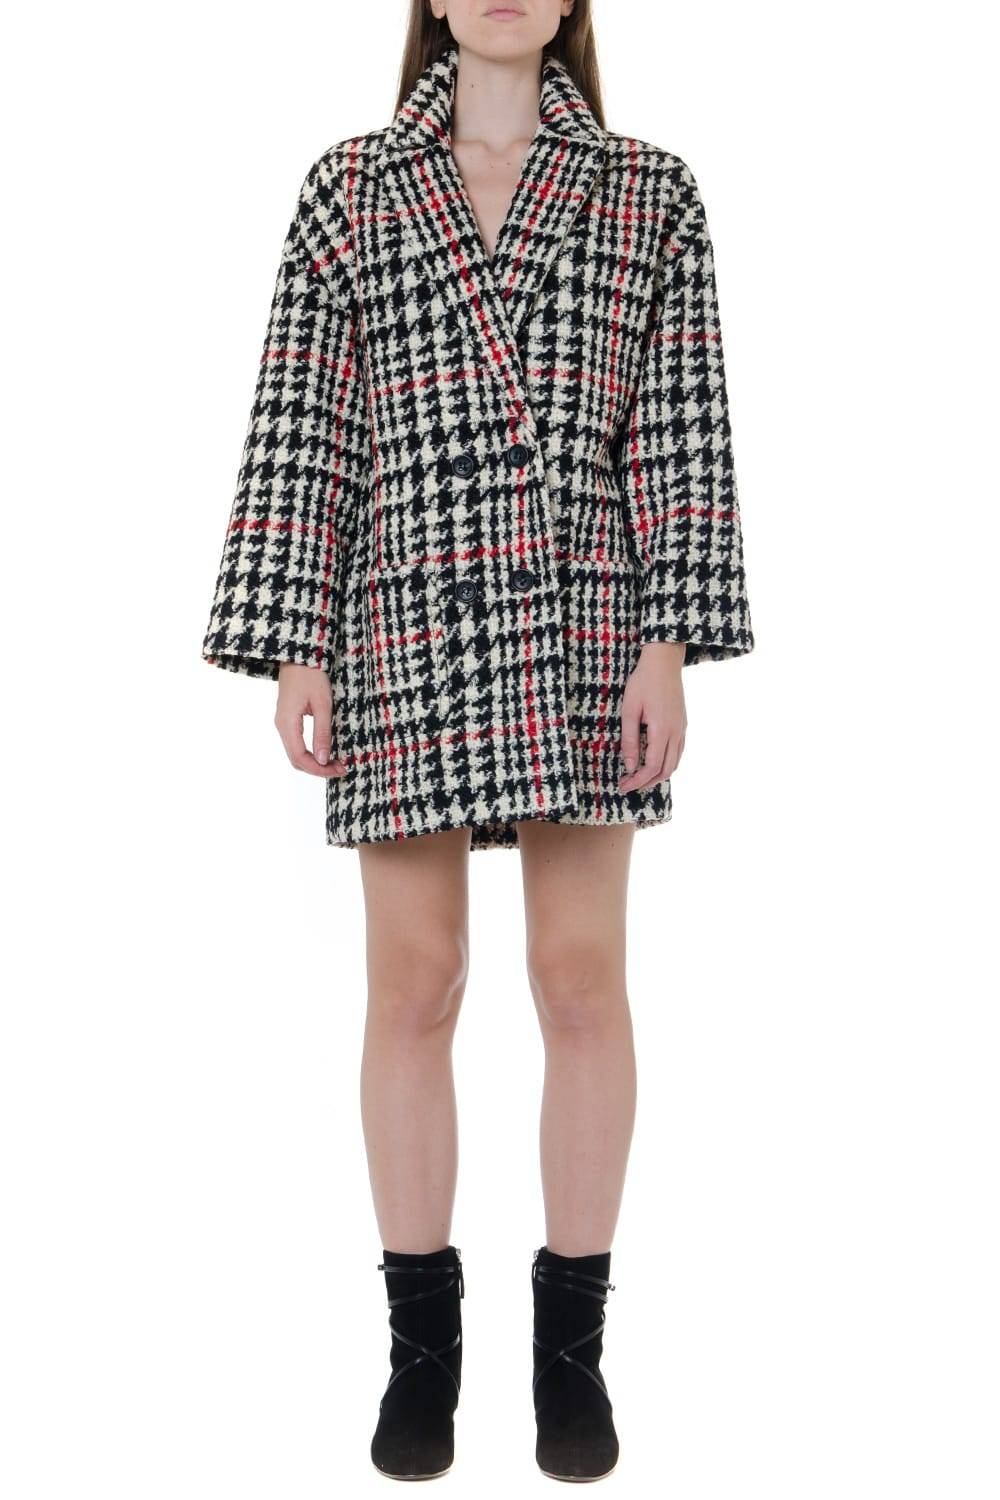 RED Valentino Virgin Wool Double Breasted Houndstooth Coat